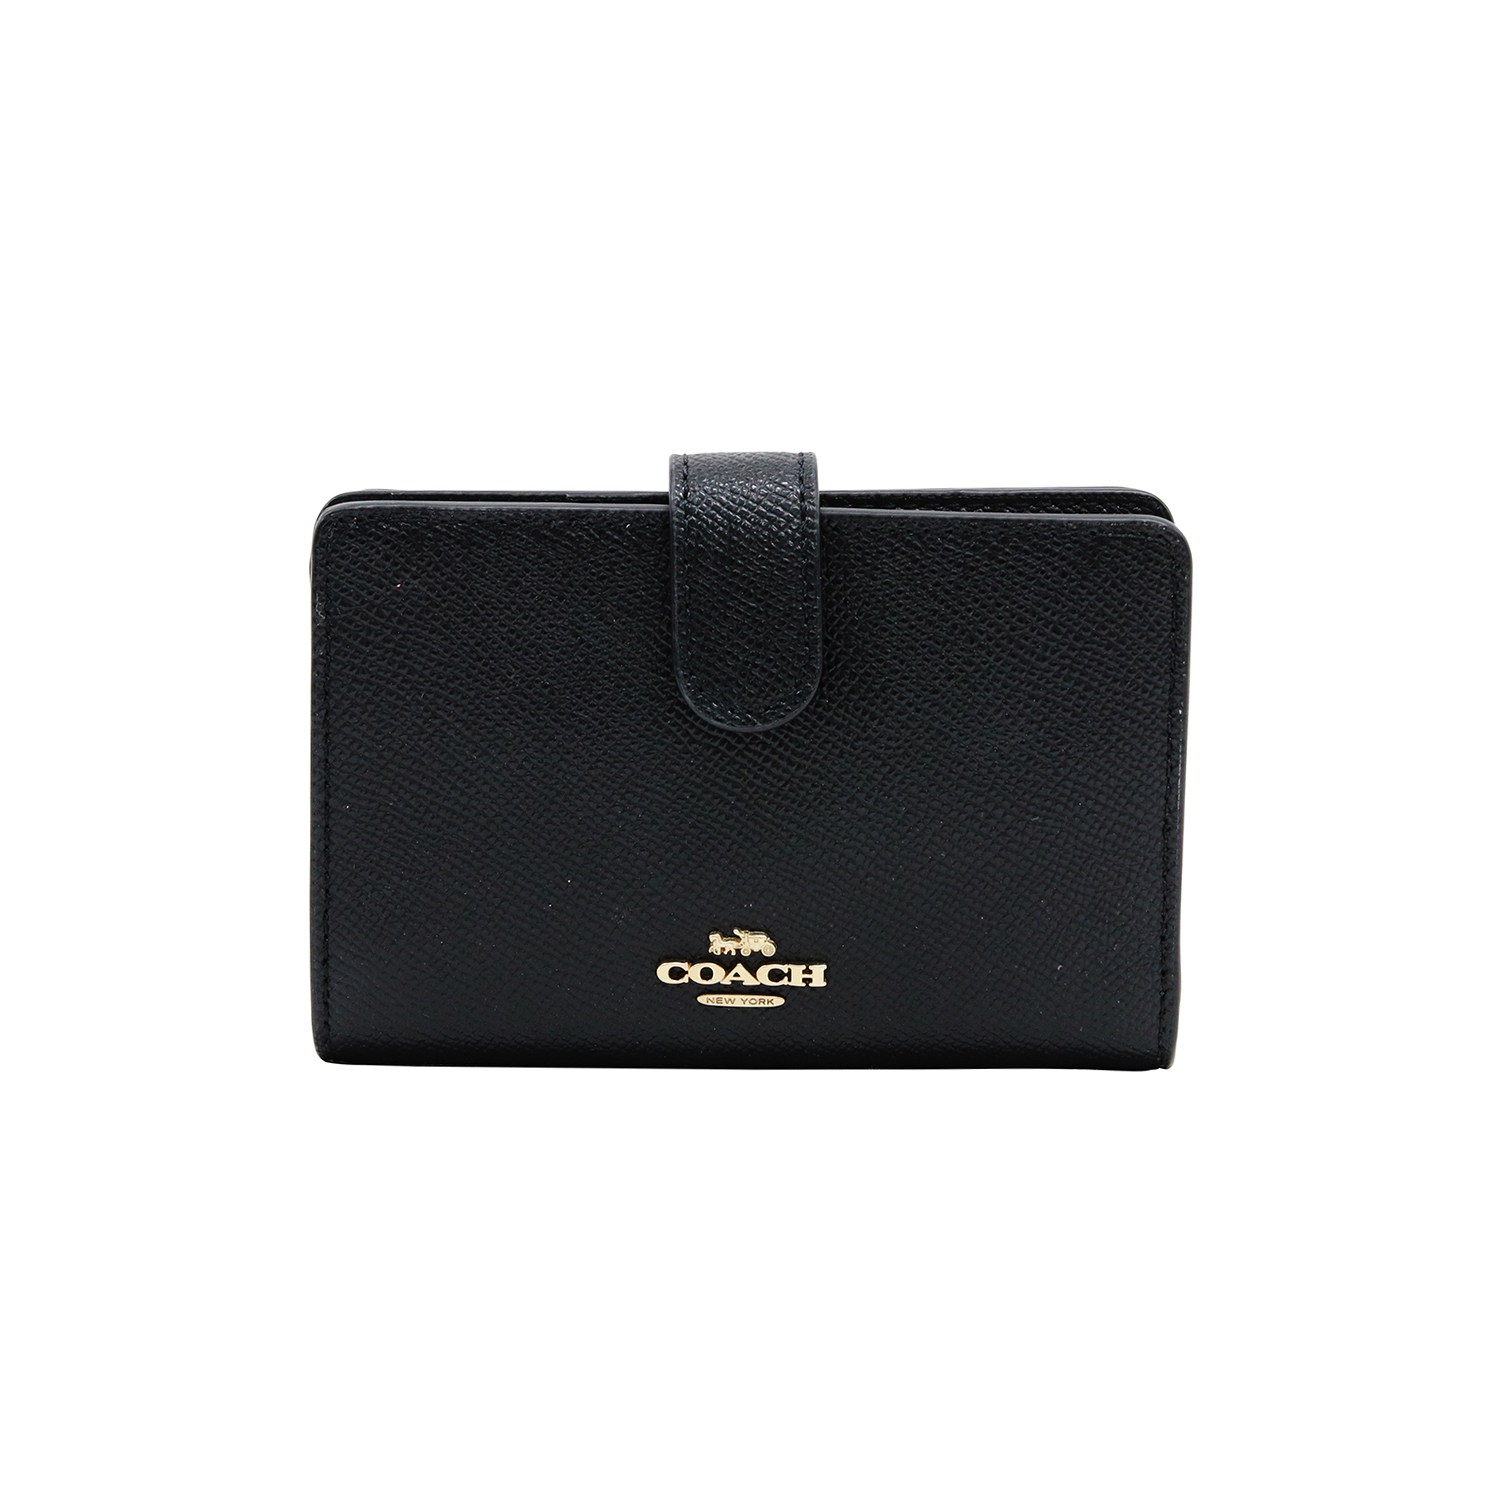 【特集セール】COACH Medium Corner Zip Wallet 27968 LIBLK 二つ折り財布